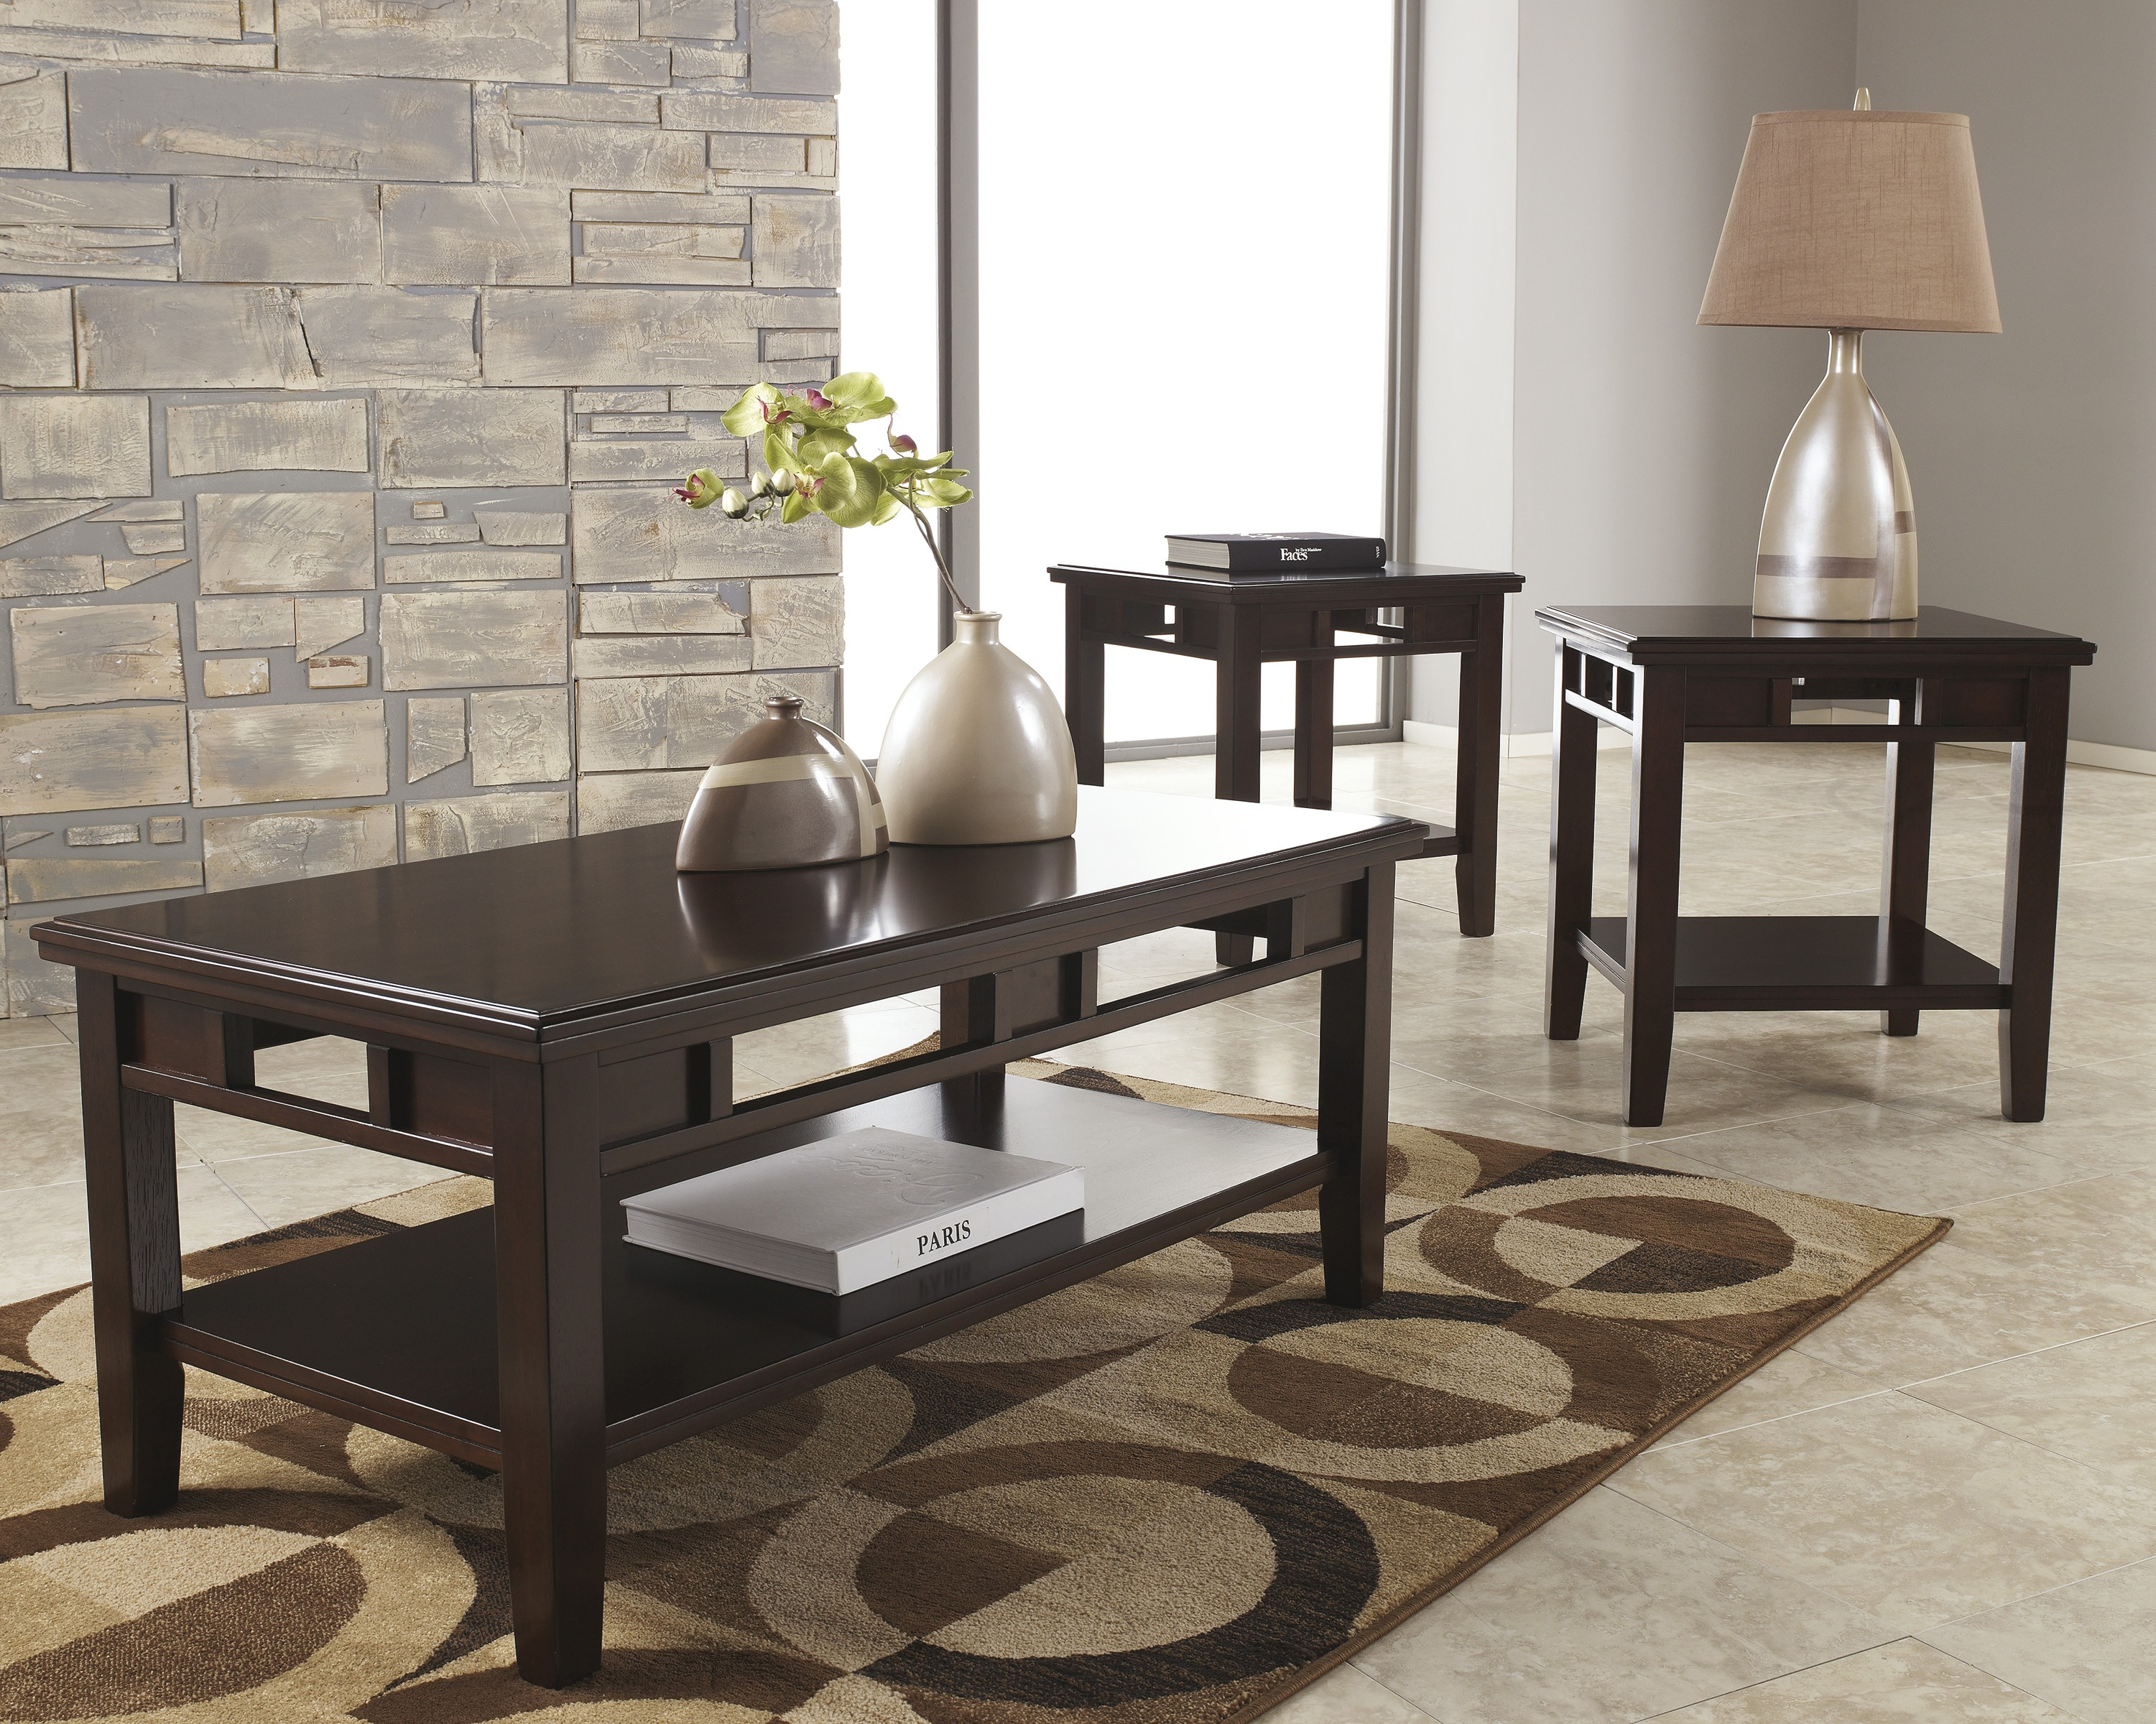 Excellent ashley furniture tacoma for home furniture with ashley furniture tacoma wa